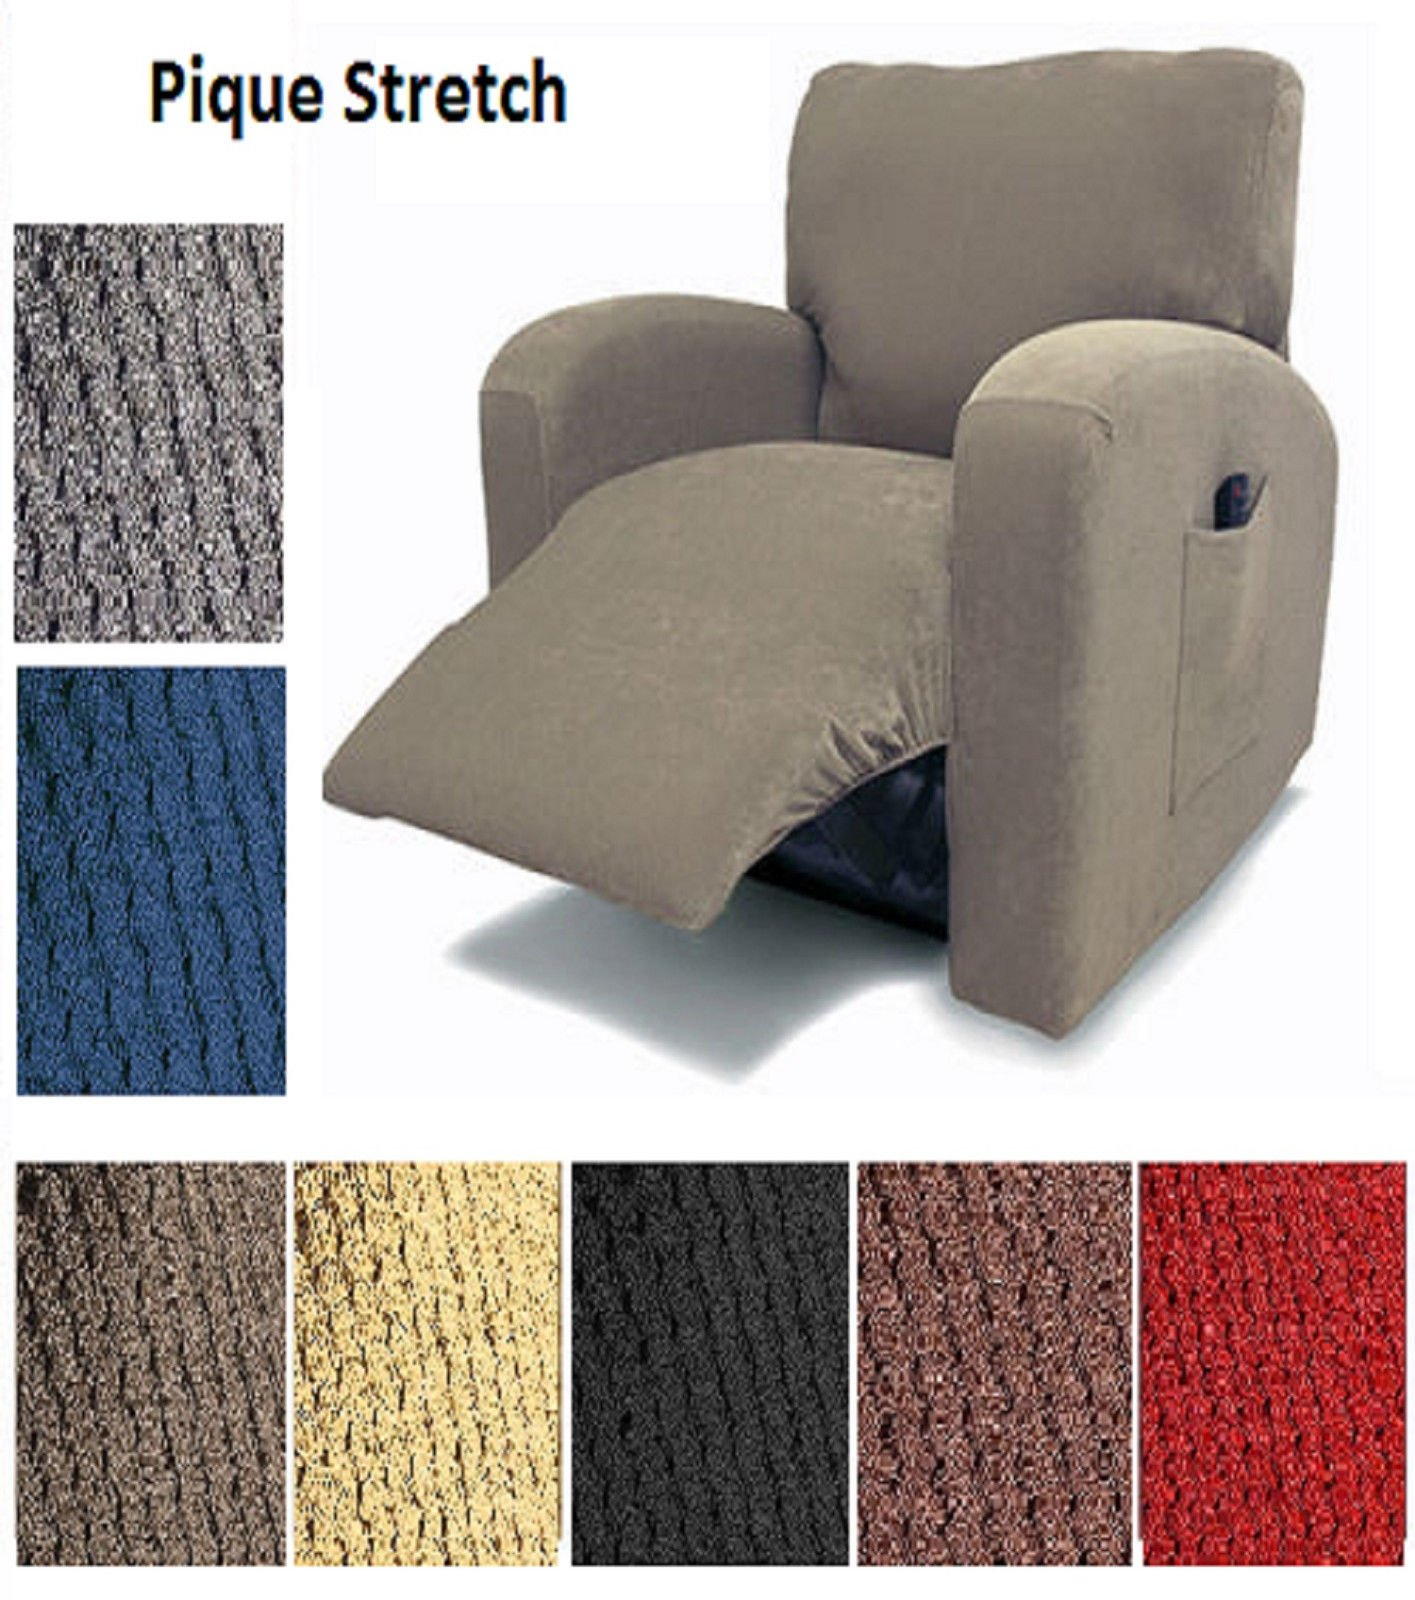 Orly's Dream Pique Stretch Fit Furniture Chair Recliner Lazy Boy Cover Slipcover Many Colors Available (Brown)